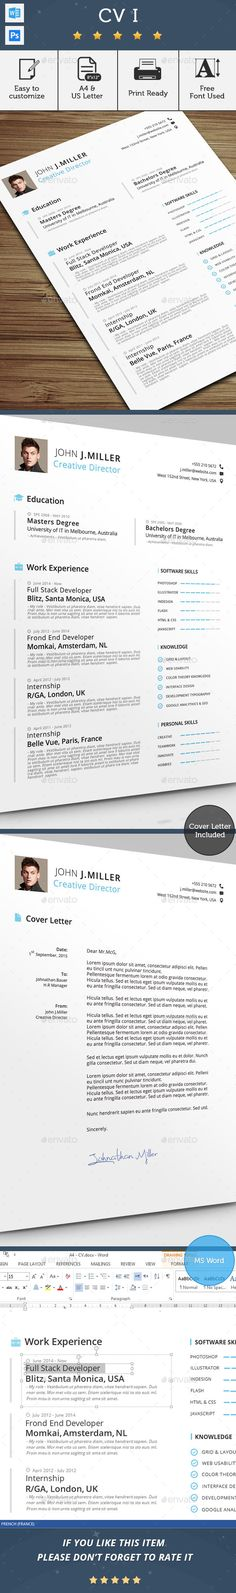 CV Template #design Download: http://graphicriver.net/item/cv-i/11669894?ref=ksioks